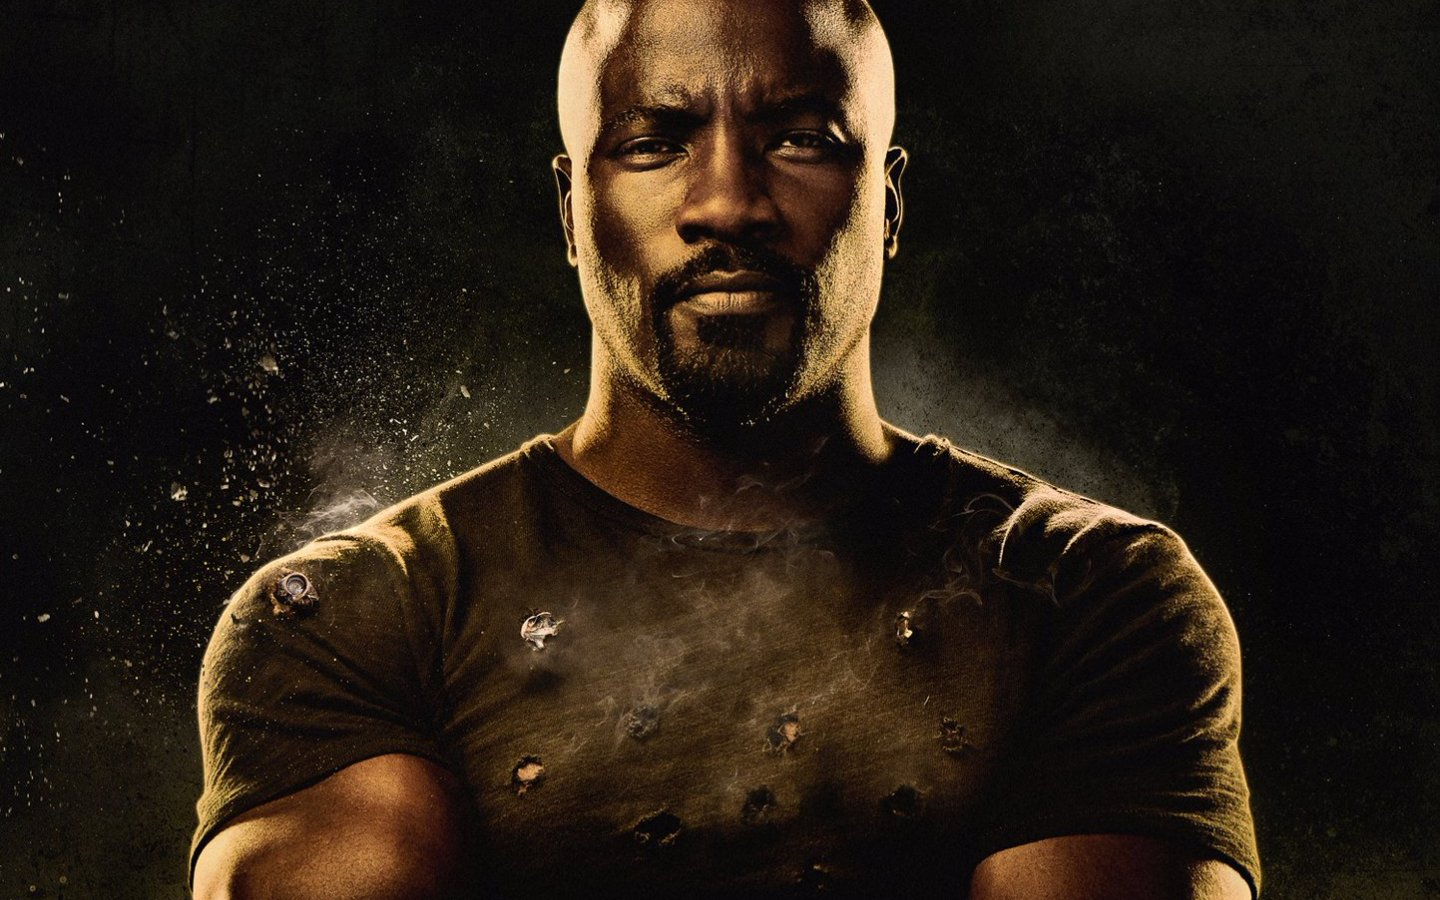 1440x900 - Mike Colter Wallpapers 2